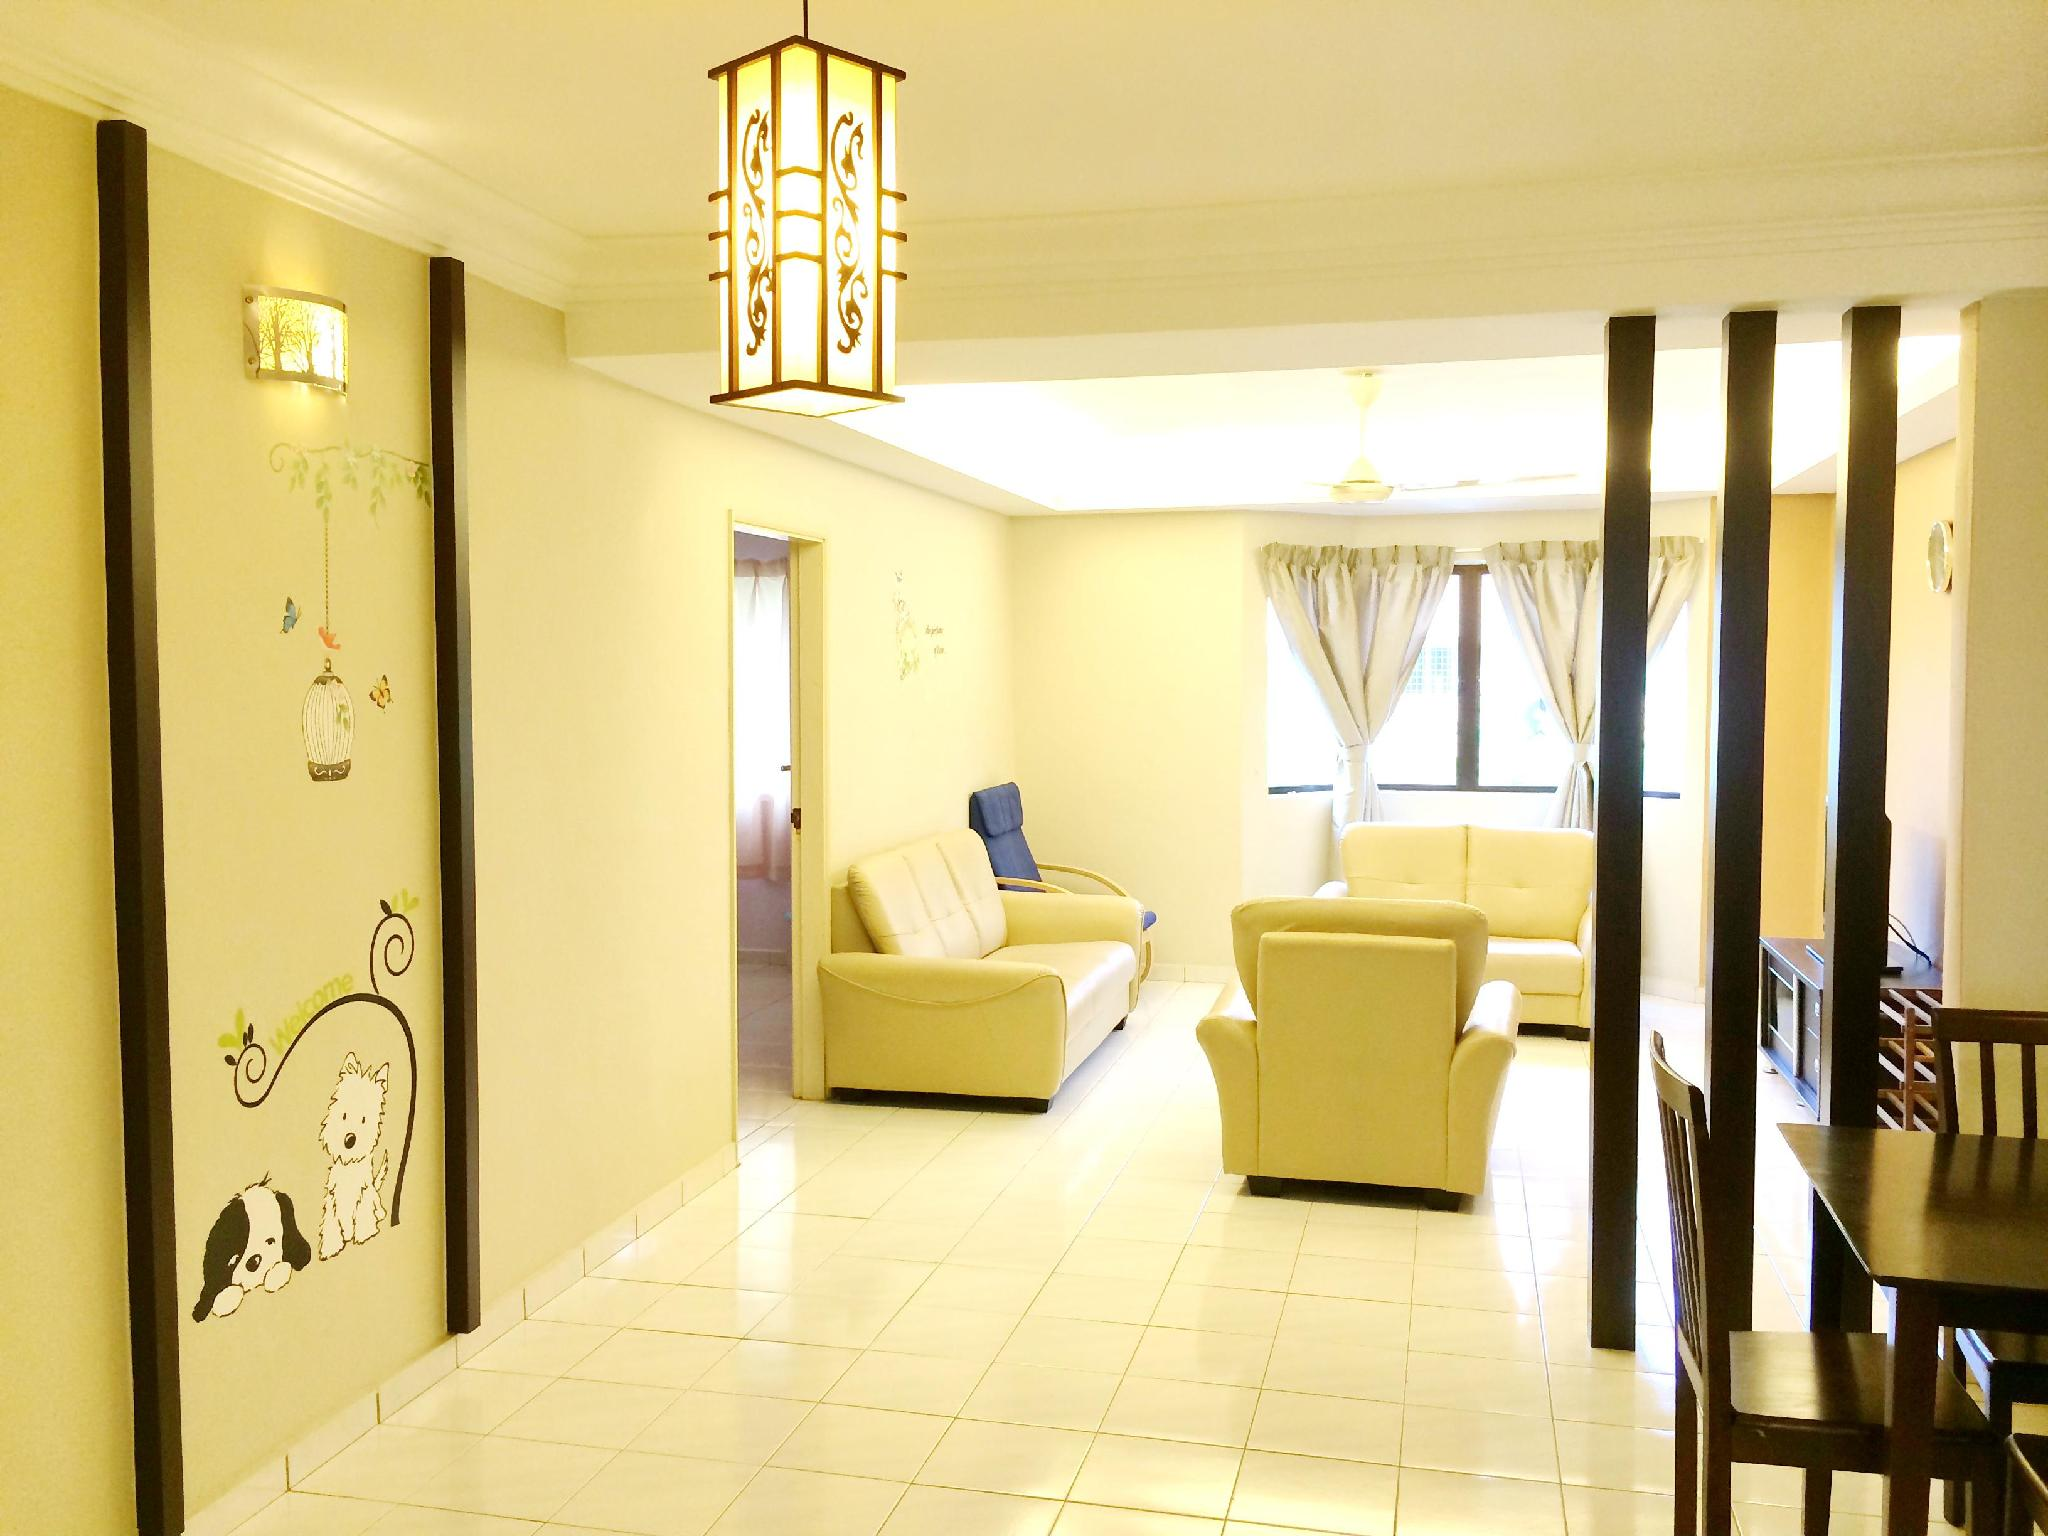 Best Price on Malacca Homeservice Apartment Melaka Raya in Malacca